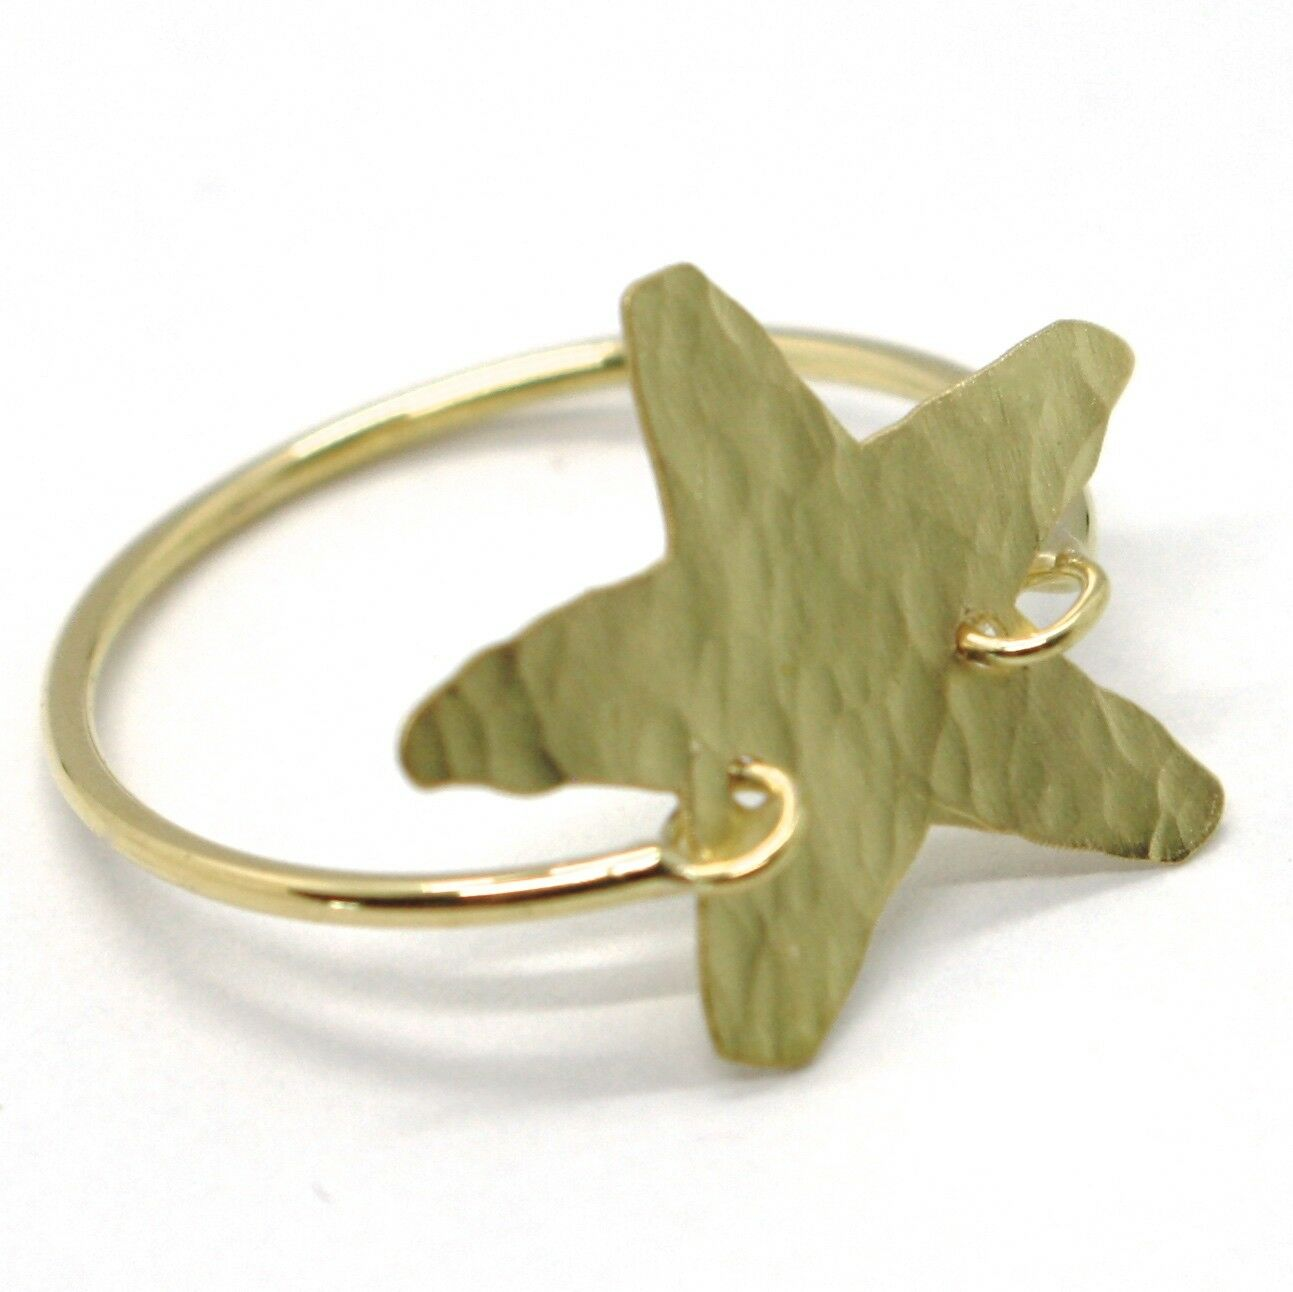 18K YELLOW gold FLAT STAR RING, FINELY WORKED, SATIN, HAMMERED, MADE IN ITALY